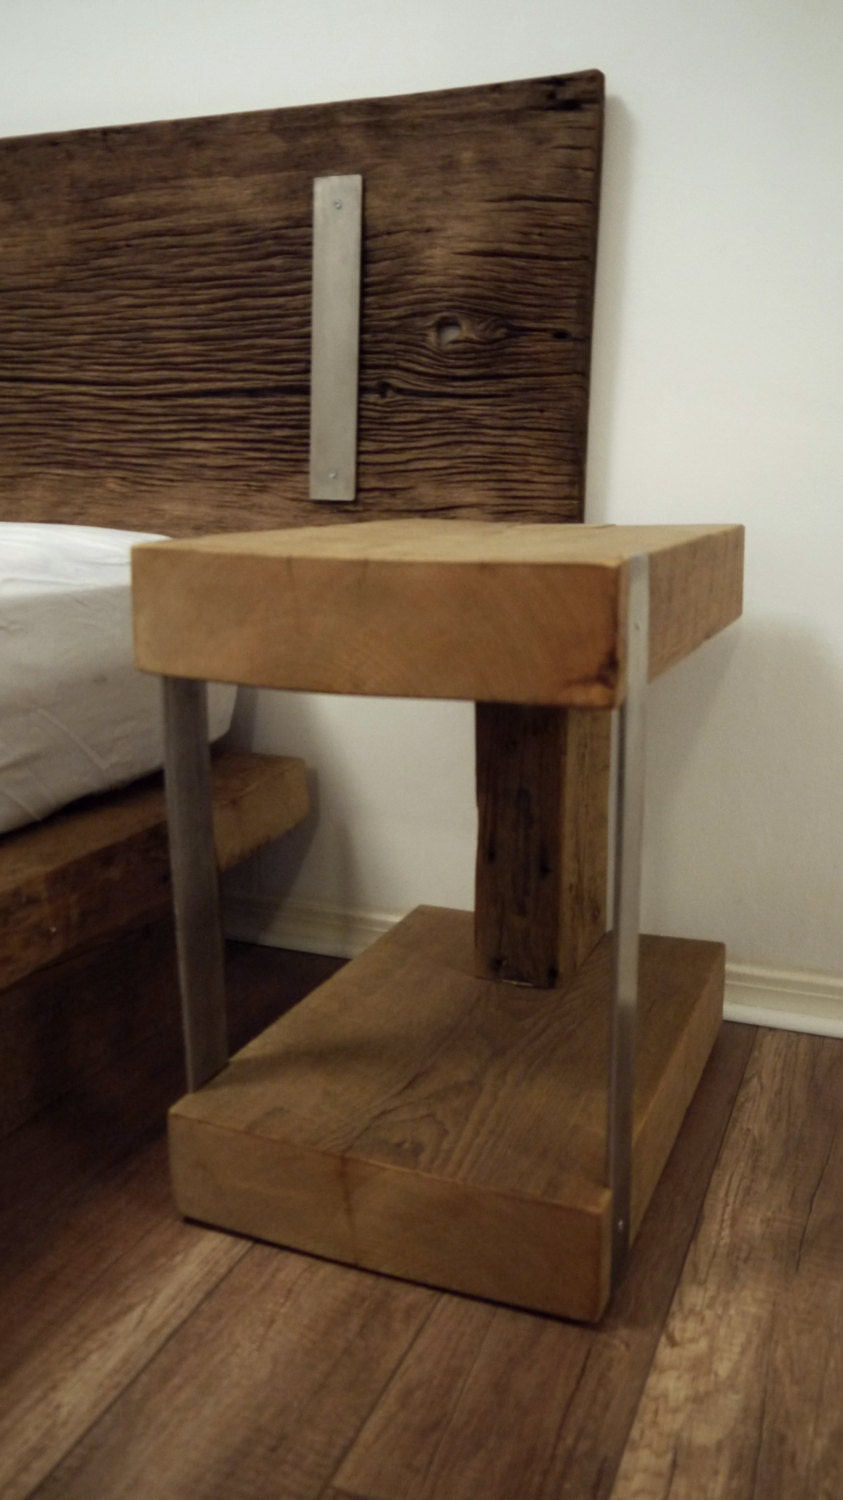 Wood And Metal Bedside Table: Night Stand. Reclaimed Wood And Metal Bedside By TicinoDesign